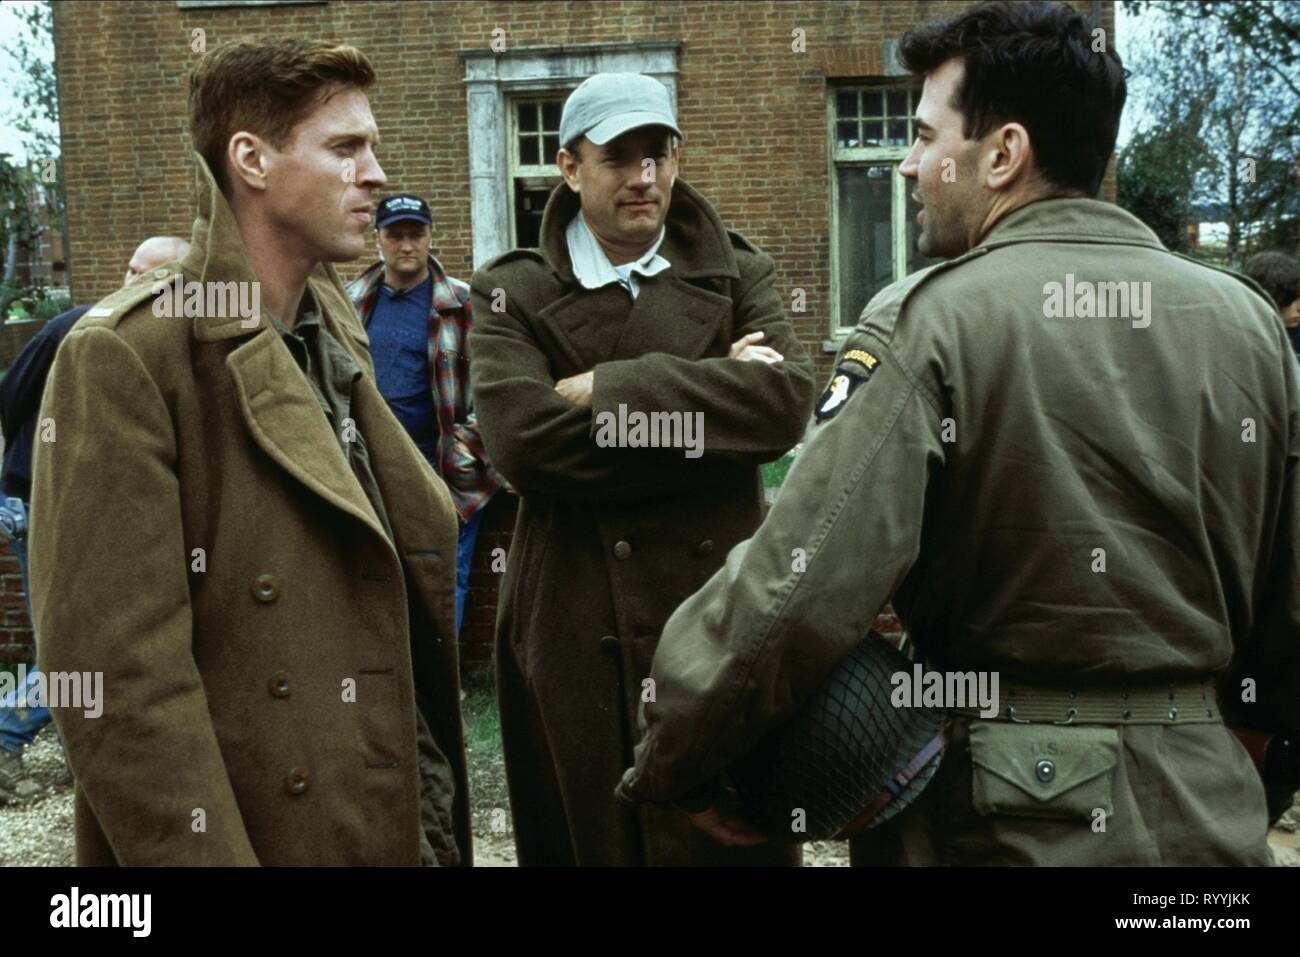 DAMIAN LEWIS, TOM HANKS, RON LIVINGSTON, BAND OF BROTHERS, 2001 - Stock Image